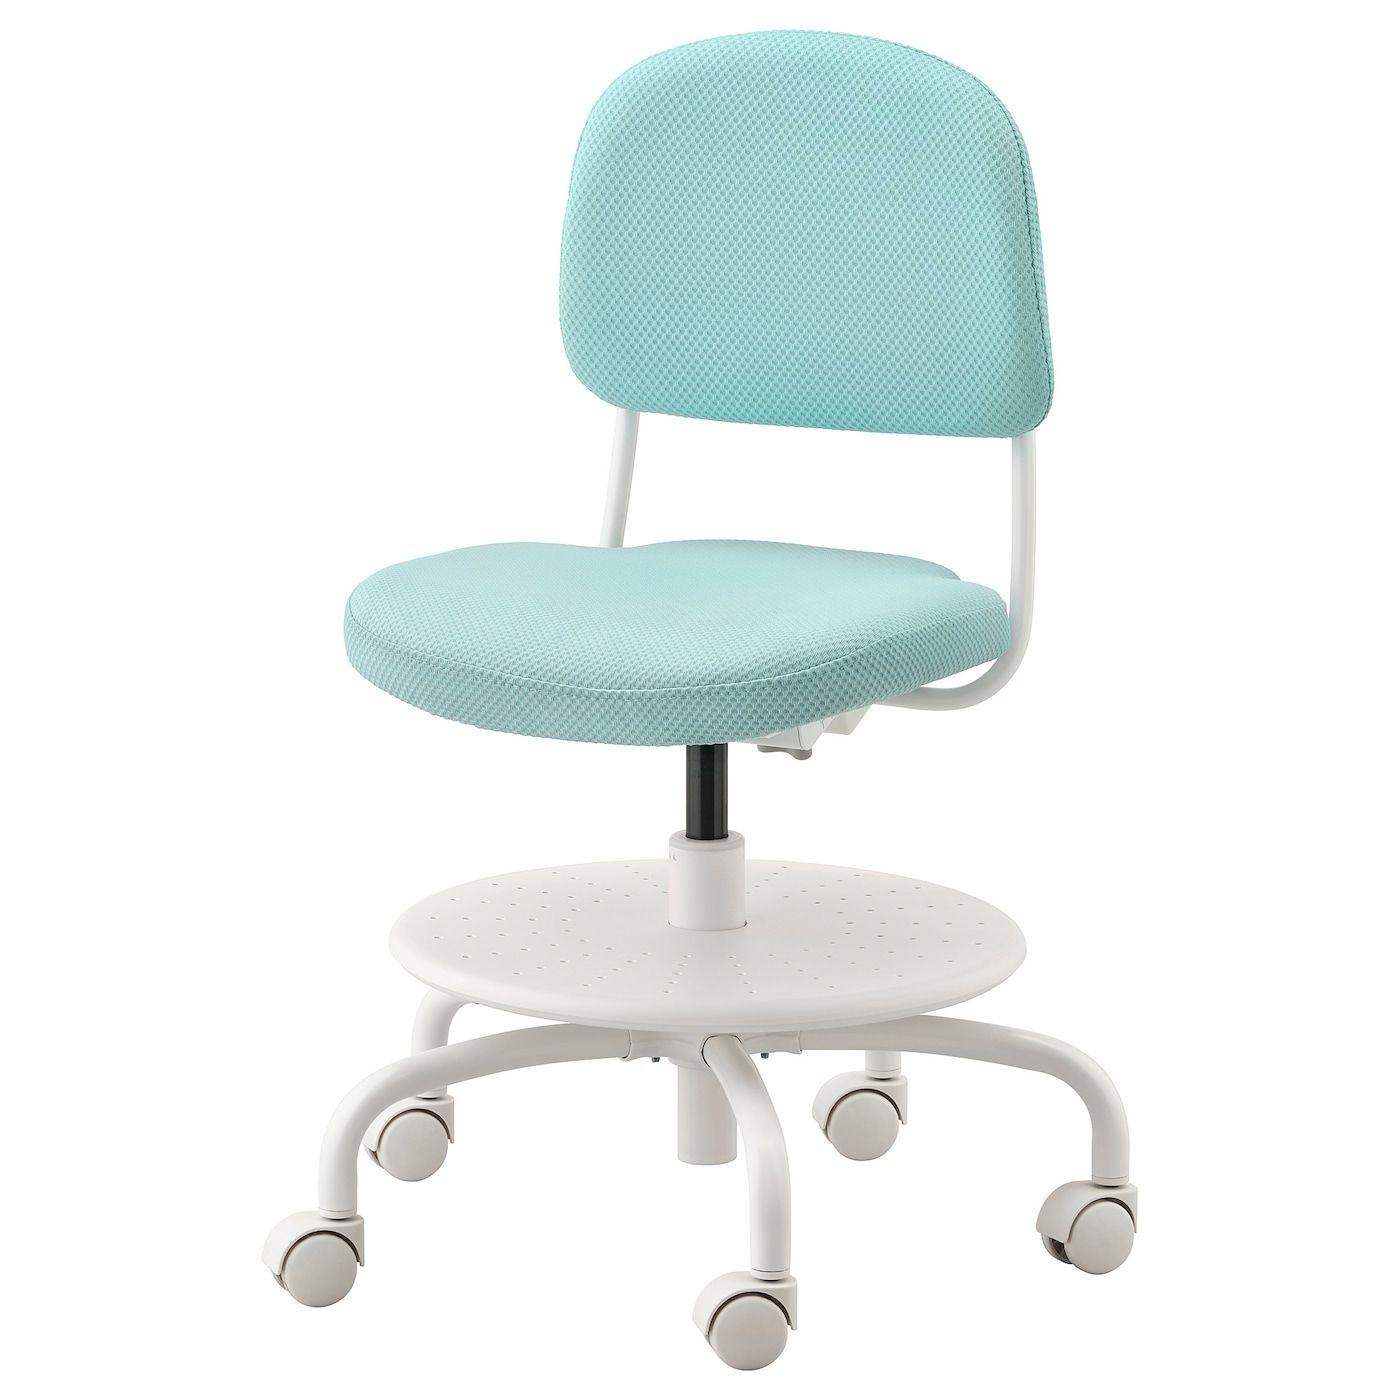 Vimund Chaise De Bureau Enfant Turquoise Clair Ikea In 2020 Childrens Desk And Chair Desk Chair Kids Desk Chair